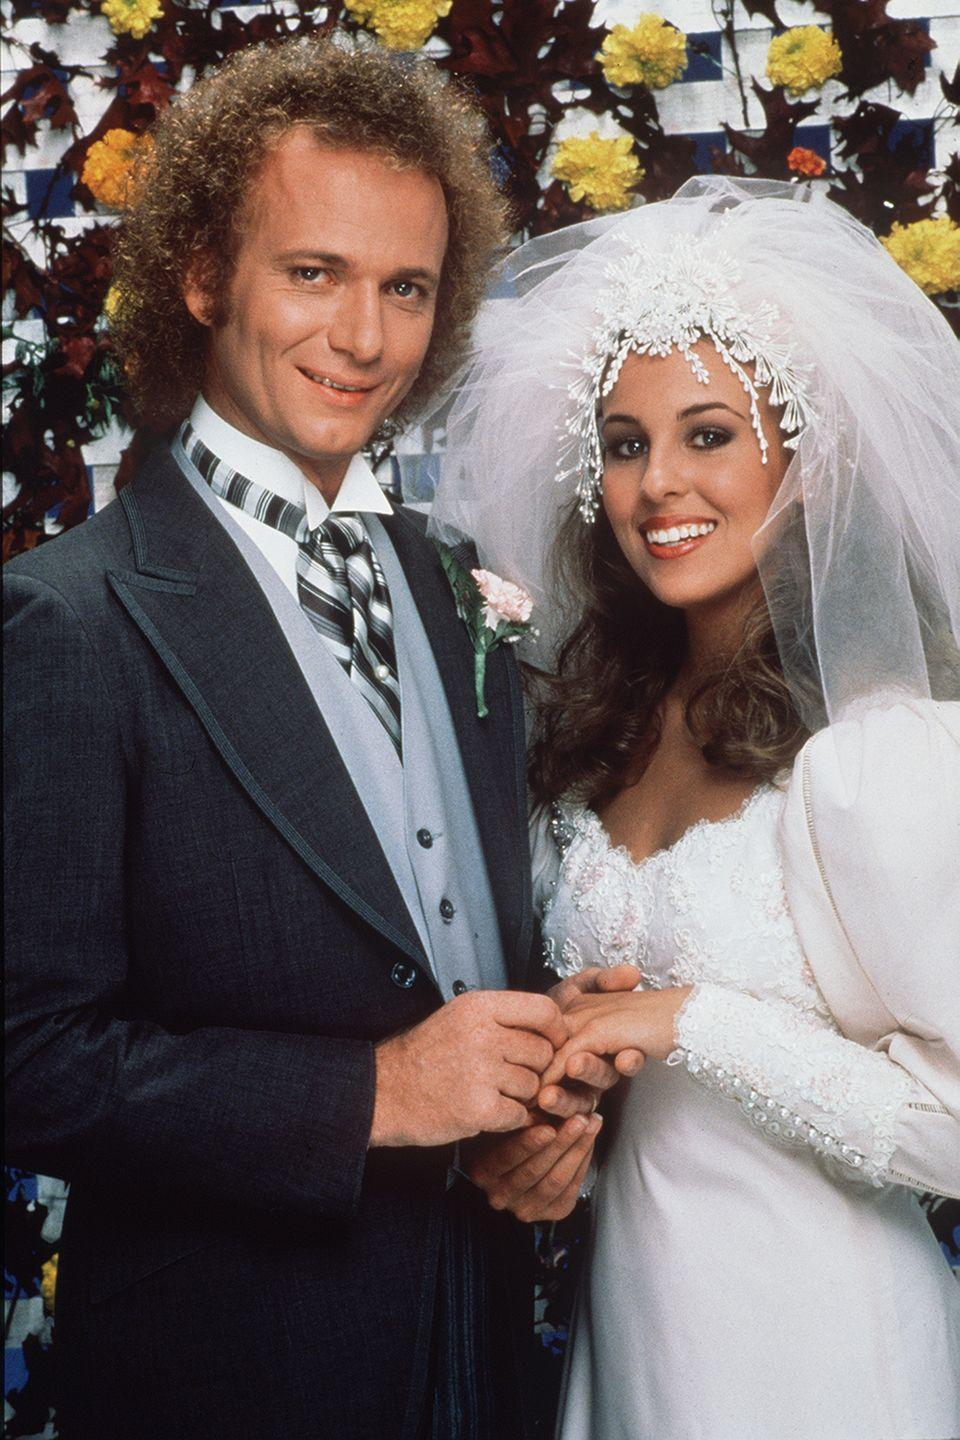 "<p>The <em>General Hospital</em> episode featuring Luke and Laura's ceremony <a href=""https://www.biography.com/news/general-hospital-genie-francis-laura-spencer-interview"" rel=""nofollow noopener"" target=""_blank"" data-ylk=""slk:drew more viewers"" class=""link rapid-noclick-resp"">drew more viewers</a> than Princess Diana's televised wedding to Prince Charles. For a fictional wedding this spectacular, Laura wore an ornate headpiece with lace and tulle veiling, a Victorian era-looking wedding dress with buttoned sleeves, and puffy shoulders – very fitting for the '80s. </p>"